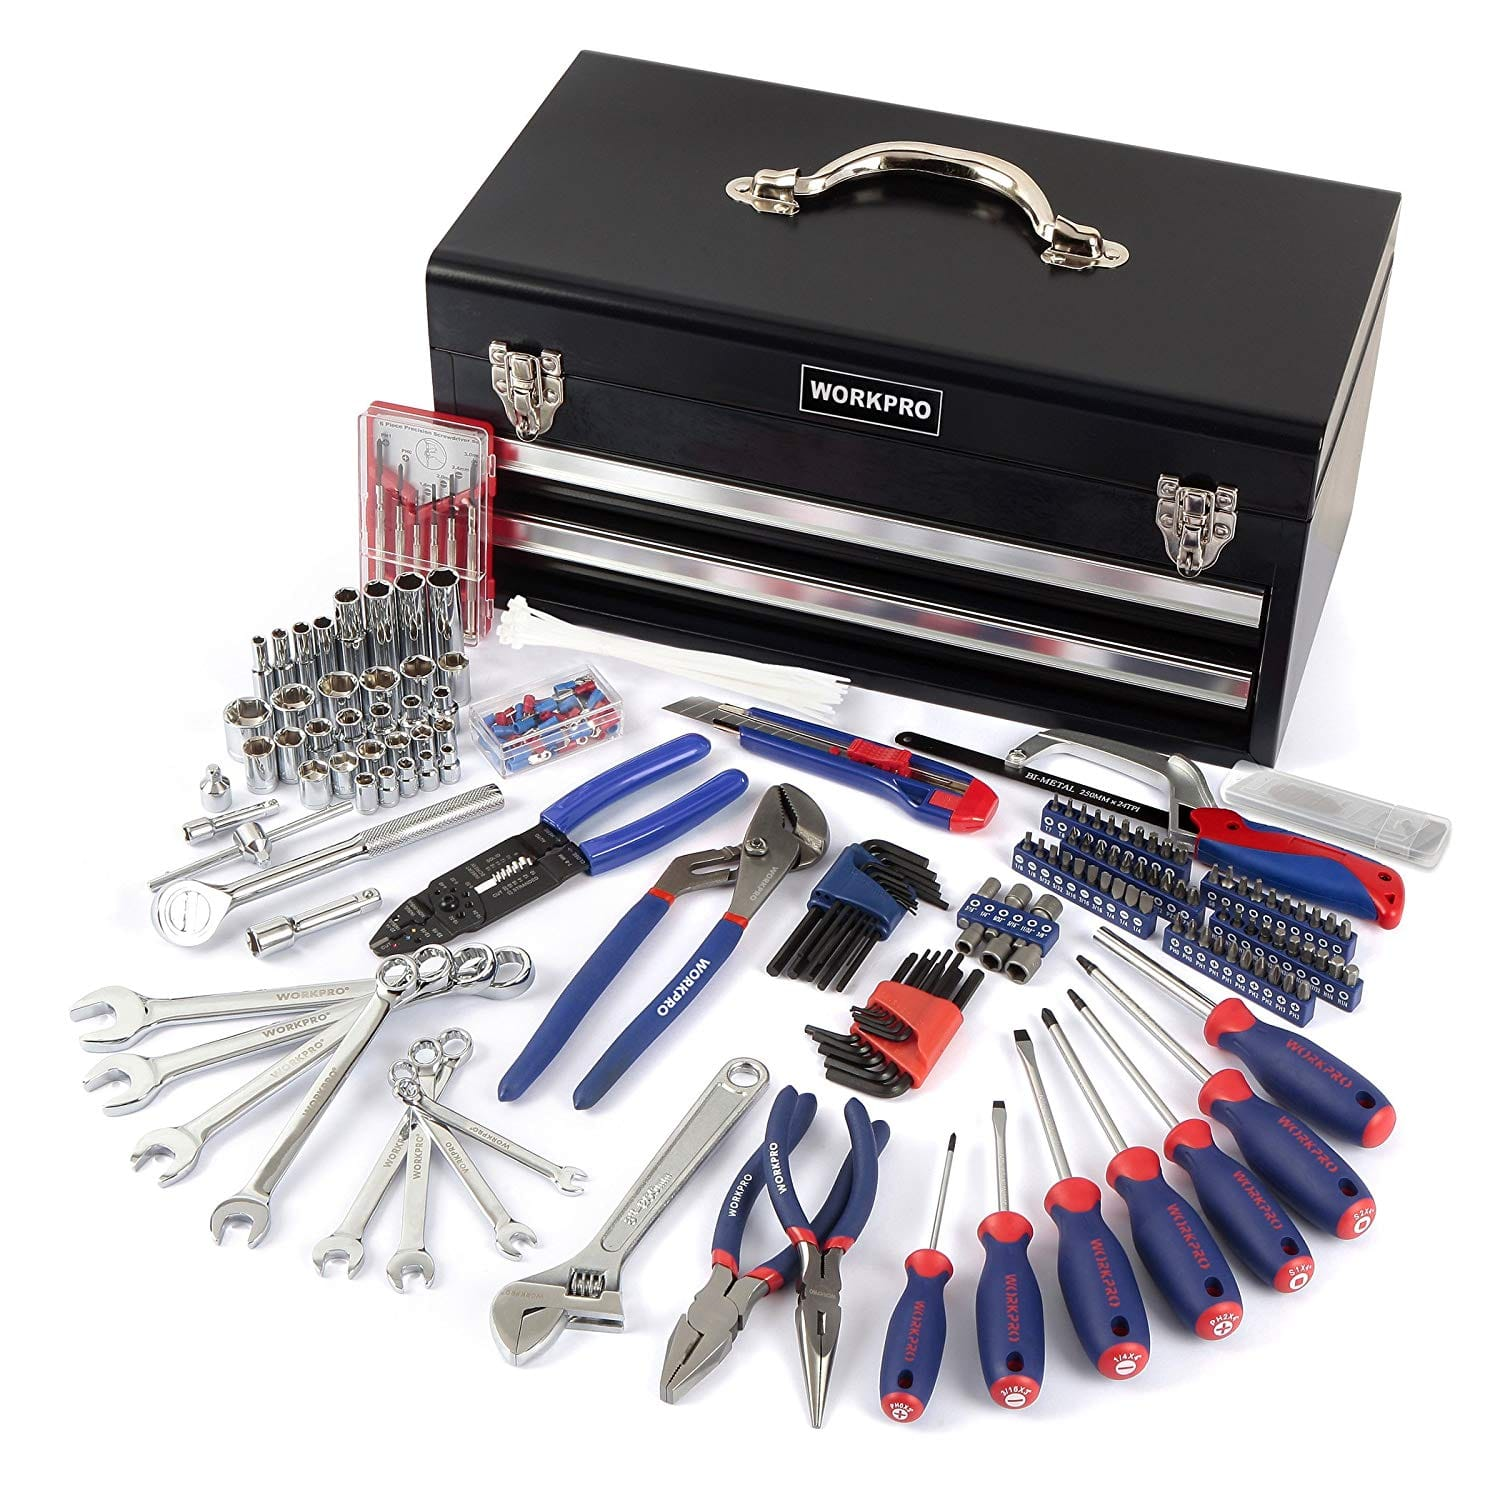 056b686c872 WorkPro 229-Piece Household Tool Set w  Two-Drawer Metal Storage Box  59.99  + Free S H for Prime - Slickdeals.net